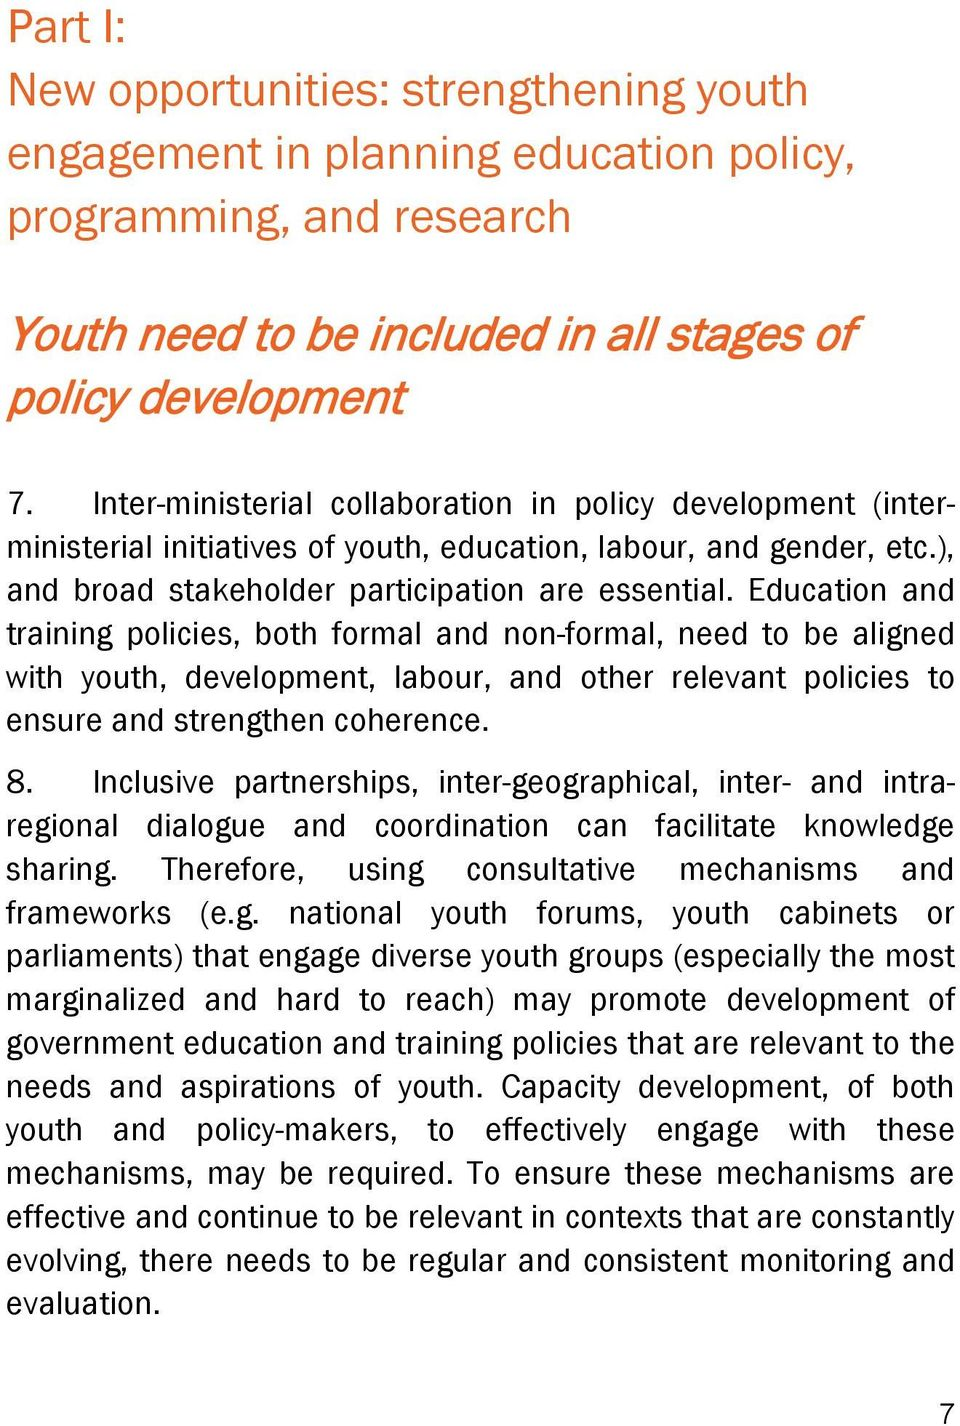 Education and training policies, both formal and non-formal, need to be aligned with youth, development, labour, and other relevant policies to ensure and strengthen coherence. 8.